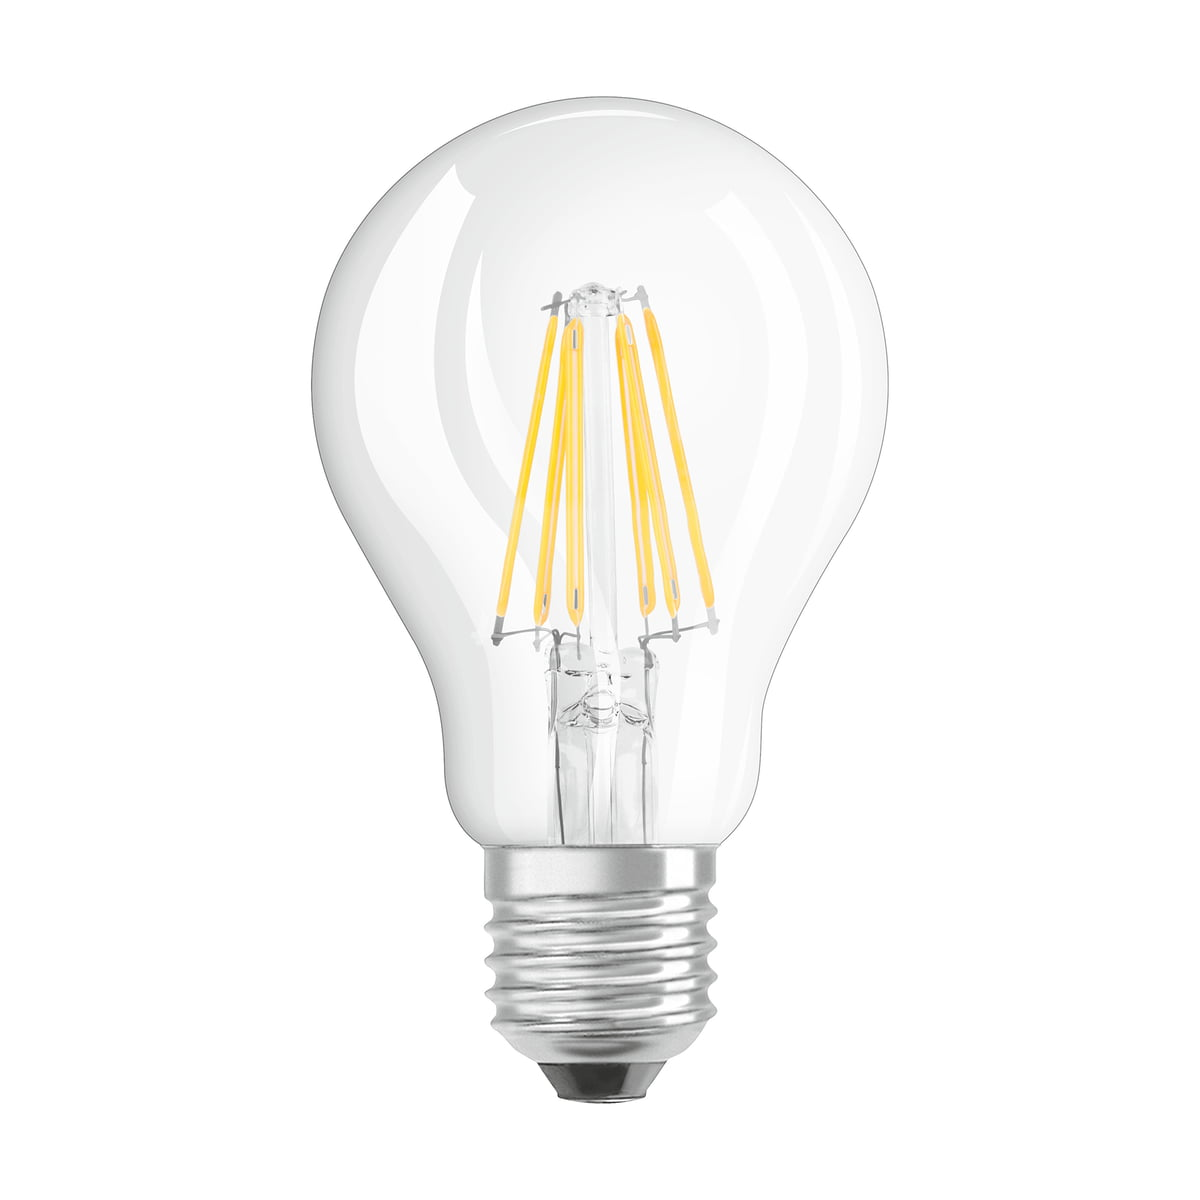 led superstar retrofit classic a filament clear by osram connox. Black Bedroom Furniture Sets. Home Design Ideas